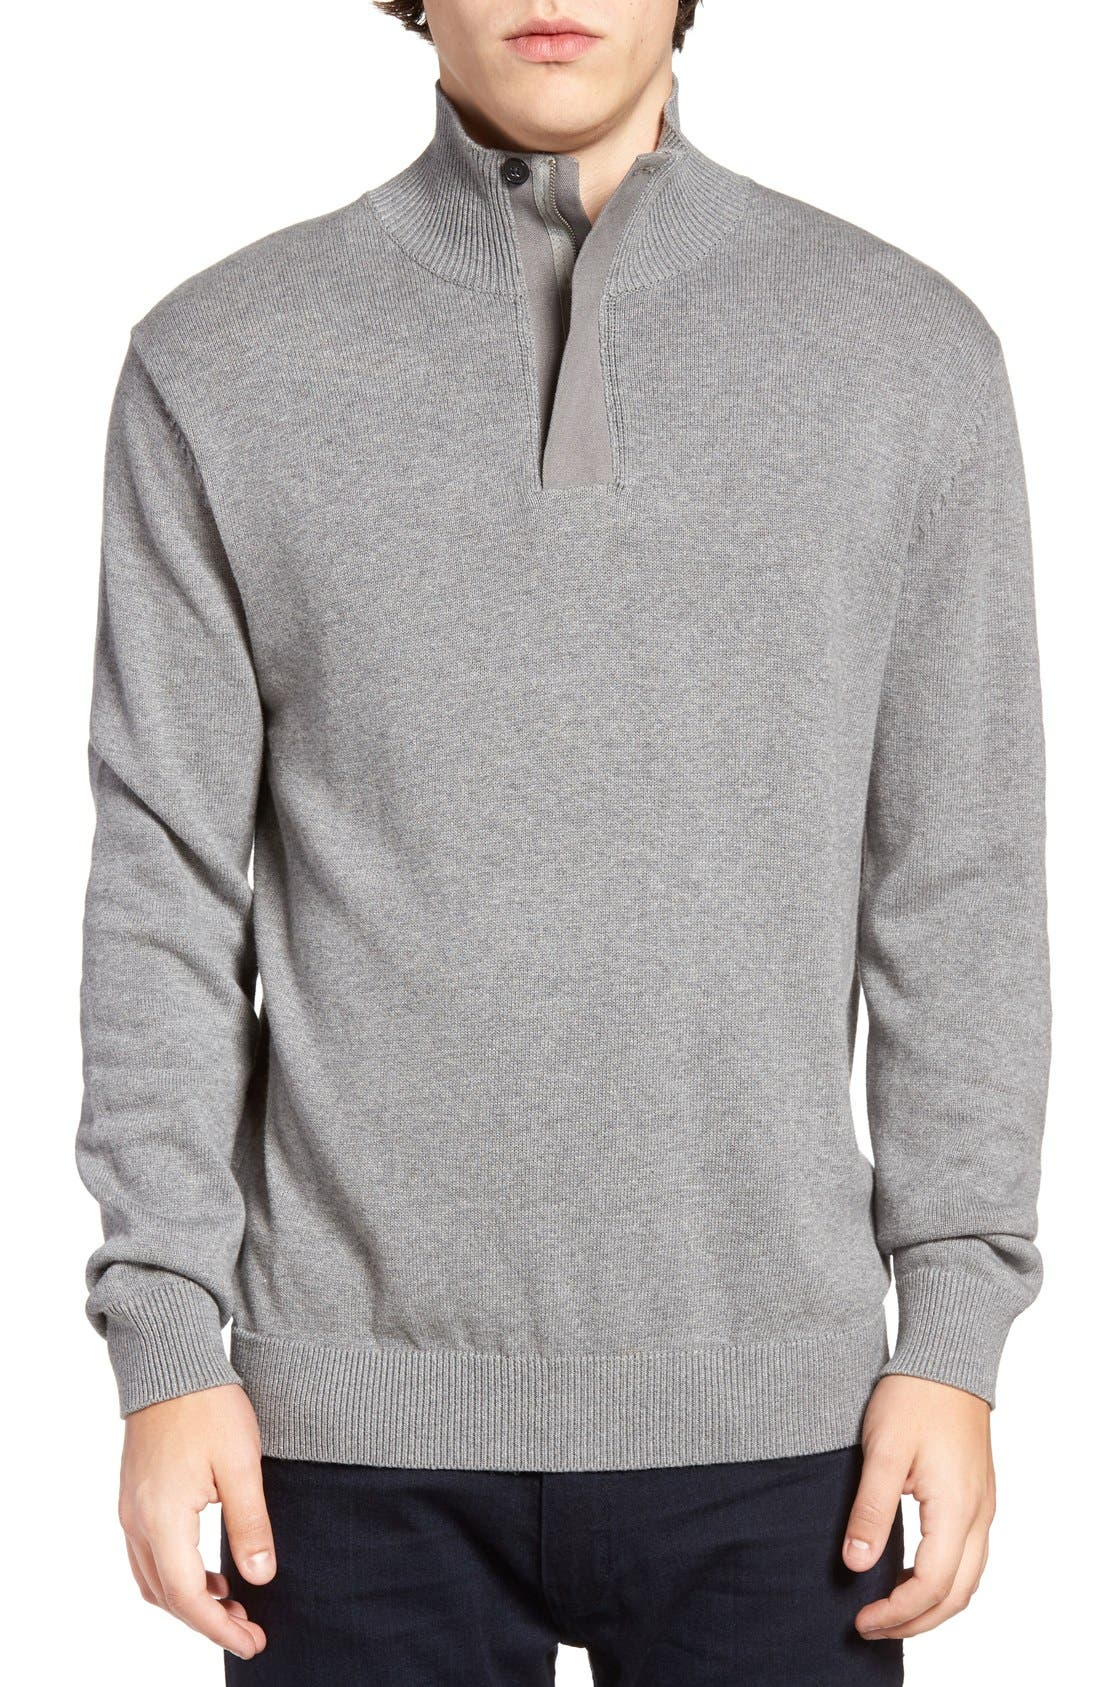 Alternate Image 1 Selected - French Connection Quarter Zip Sweater